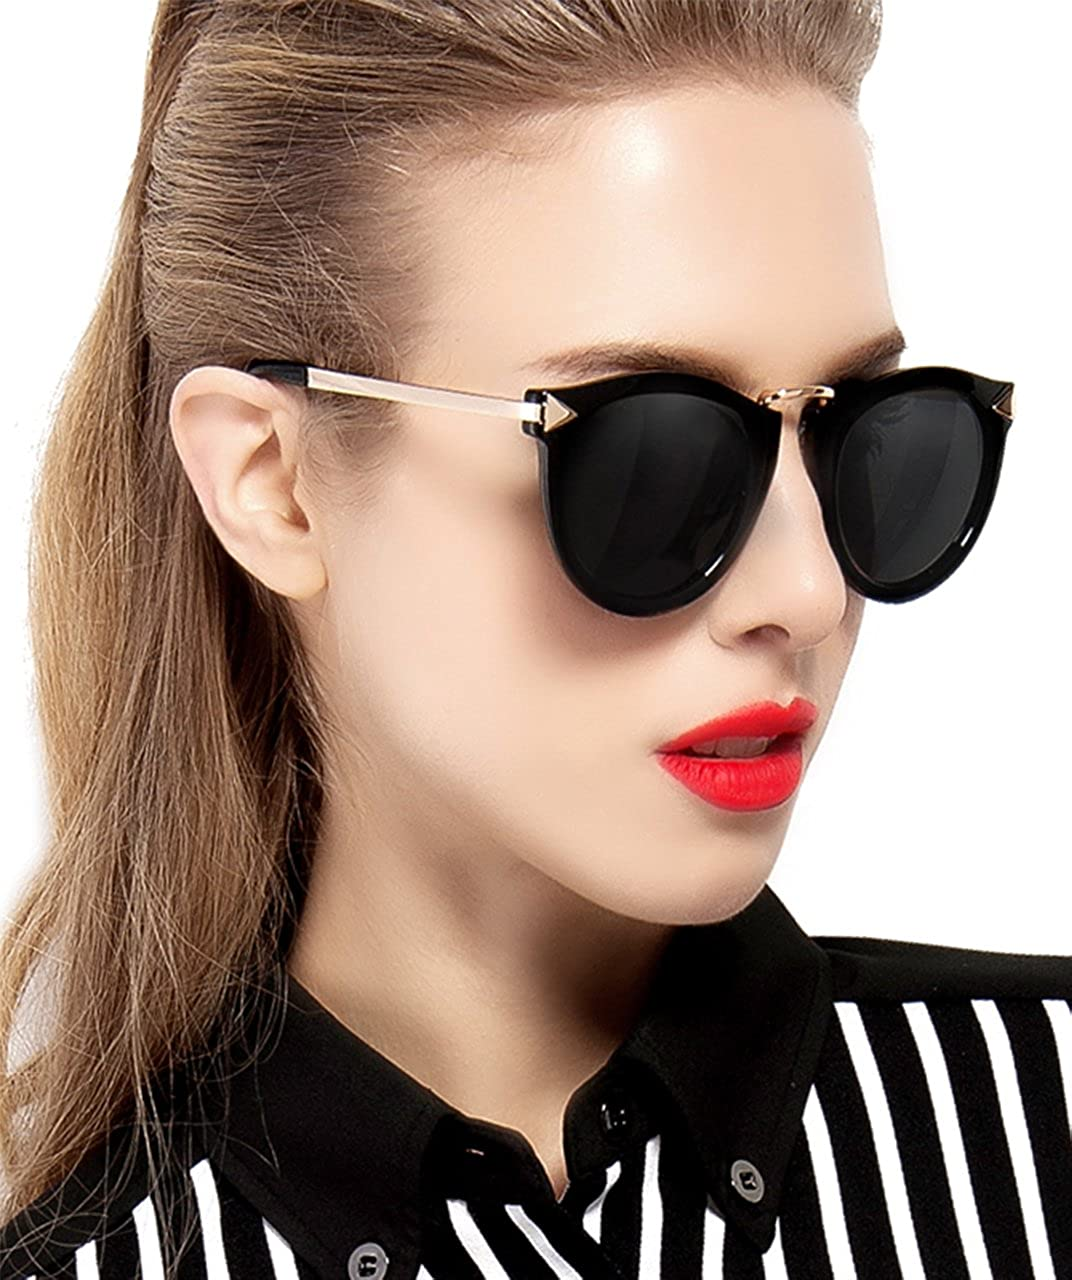 69749d9e5f ATTCL Women s Vintage Fashion Round Arrow Style Polarized Sunglasses 11189  Black  Amazon.co.uk  Clothing